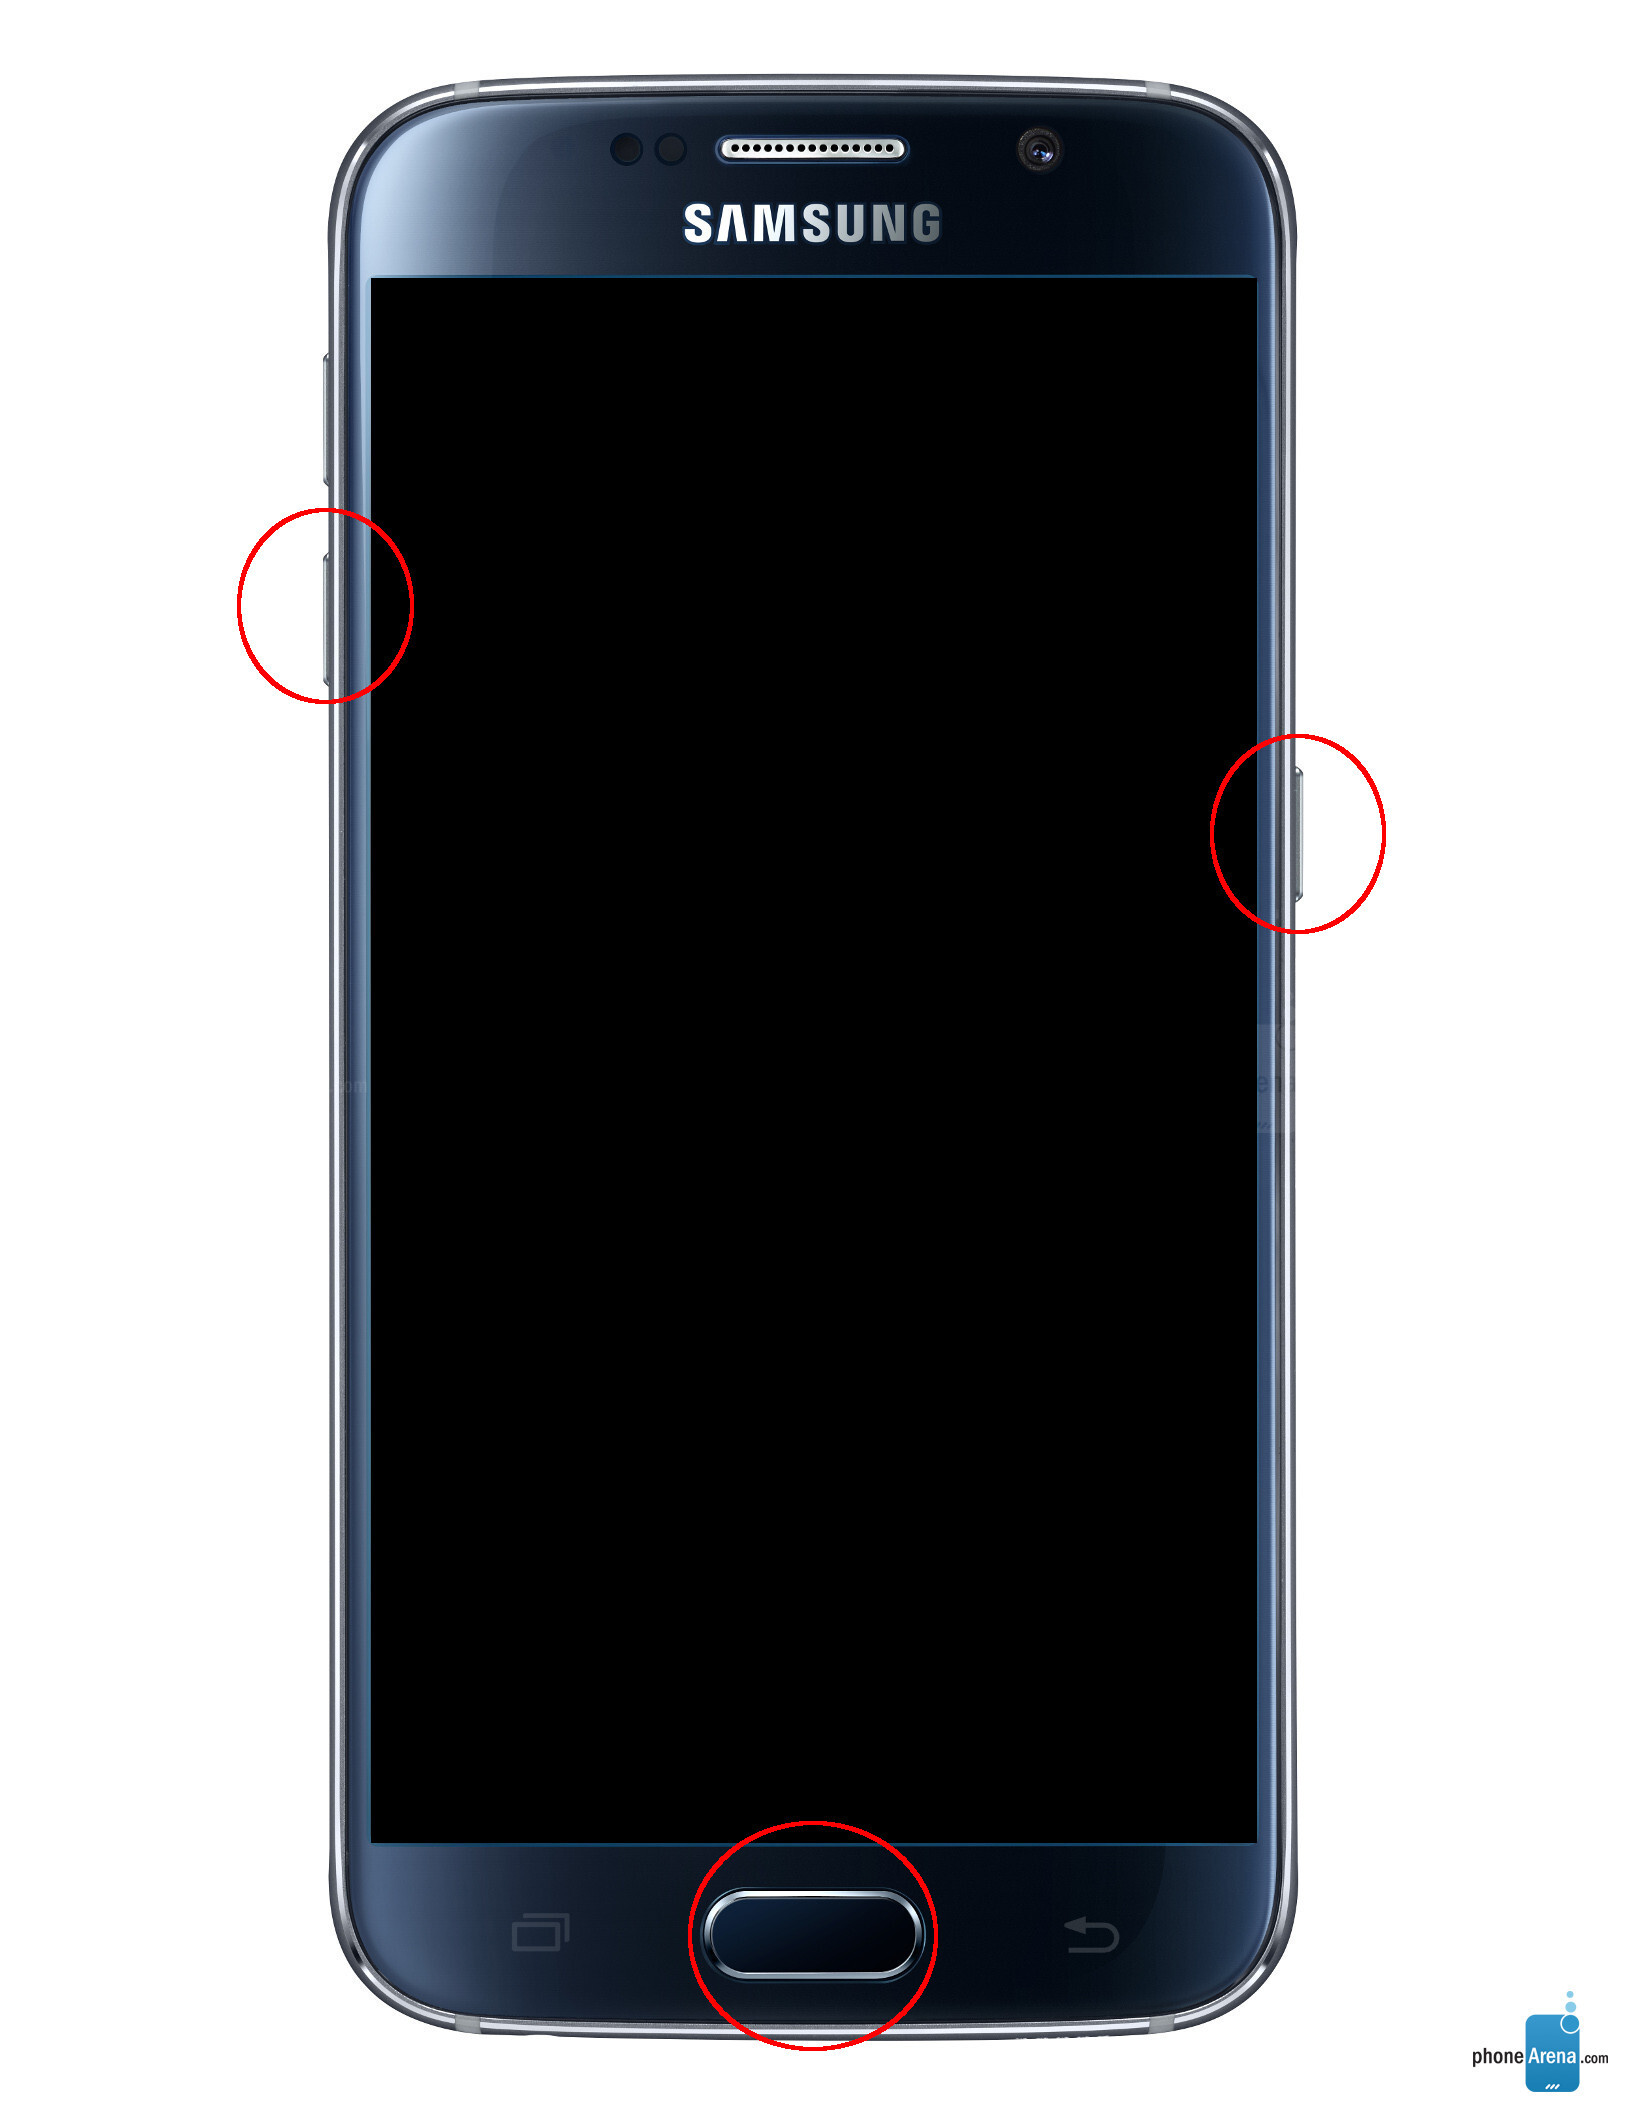 Phone Android Phone Download Mode how to boot intoenter fastboot mode on android enter download samsung devices